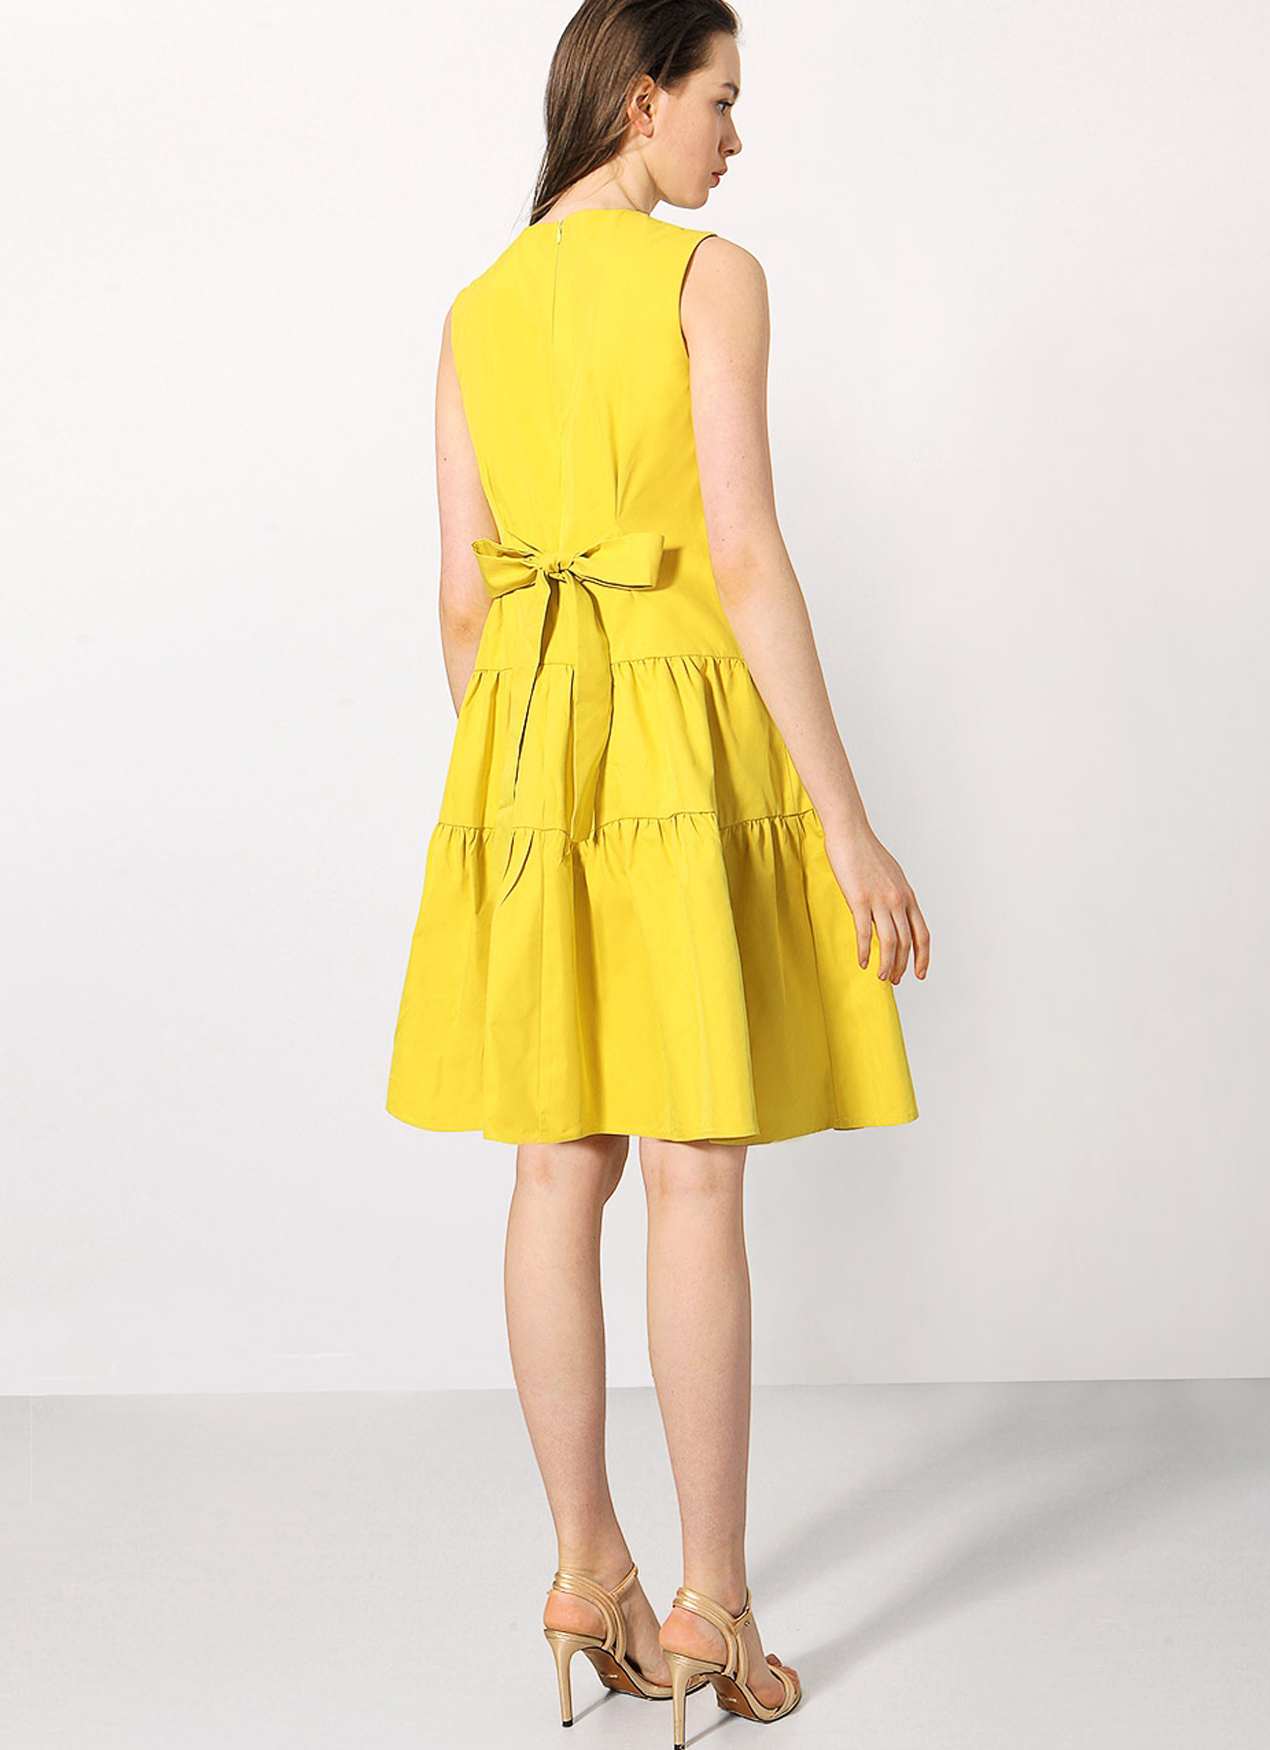 Saturday Club Yellow Flare Dress With Gathered Skirt